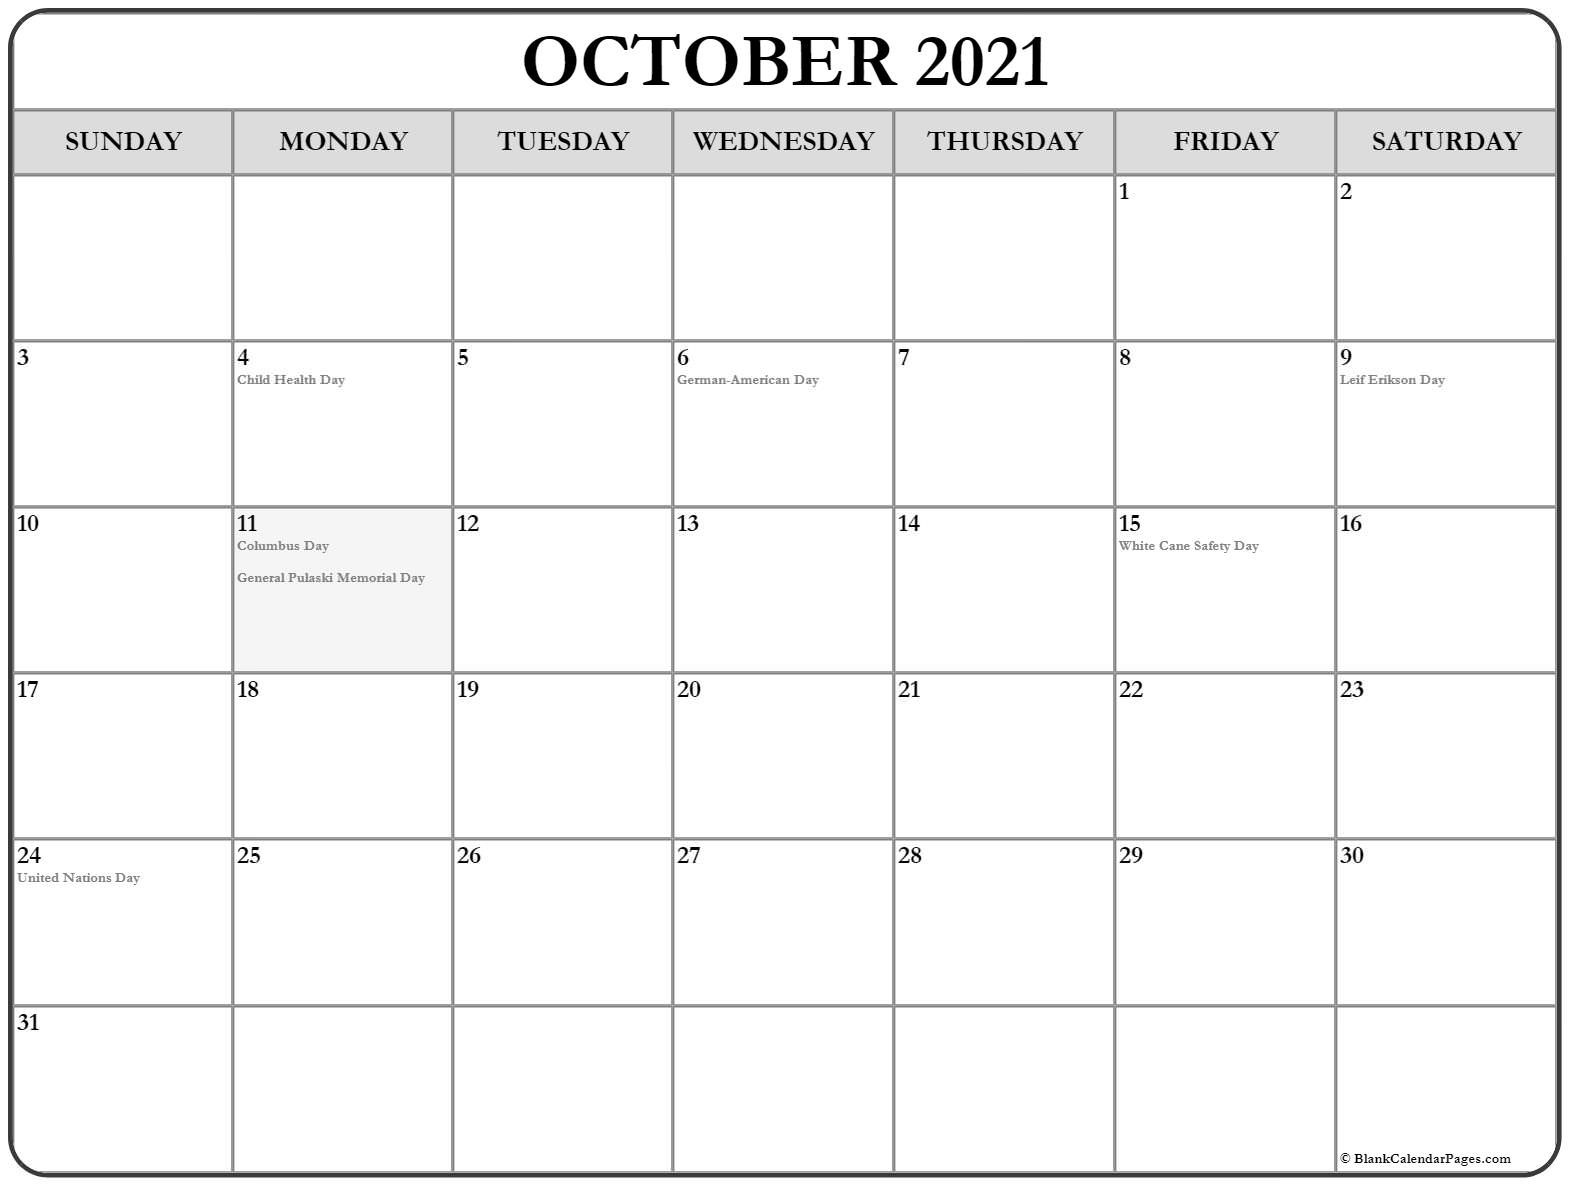 October 2021 USA holiday calendar. Incluides US federal holidays and observations